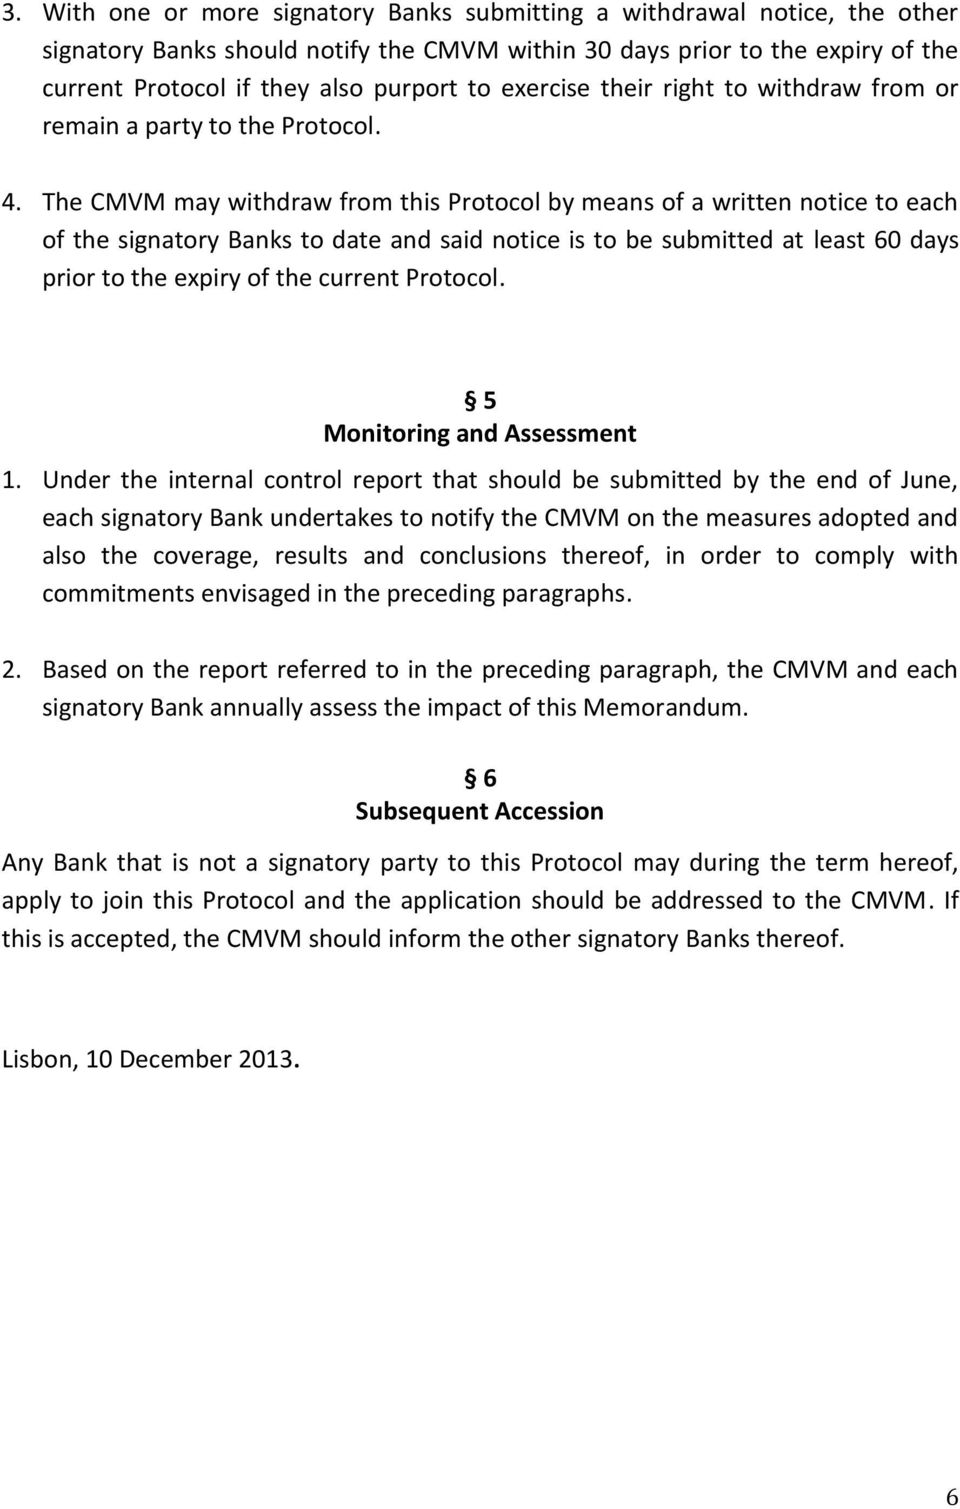 The CMVM may withdraw from this Protocol by means of a written notice to each of the signatory Banks to date and said notice is to be submitted at least 60 days prior to the expiry of the current